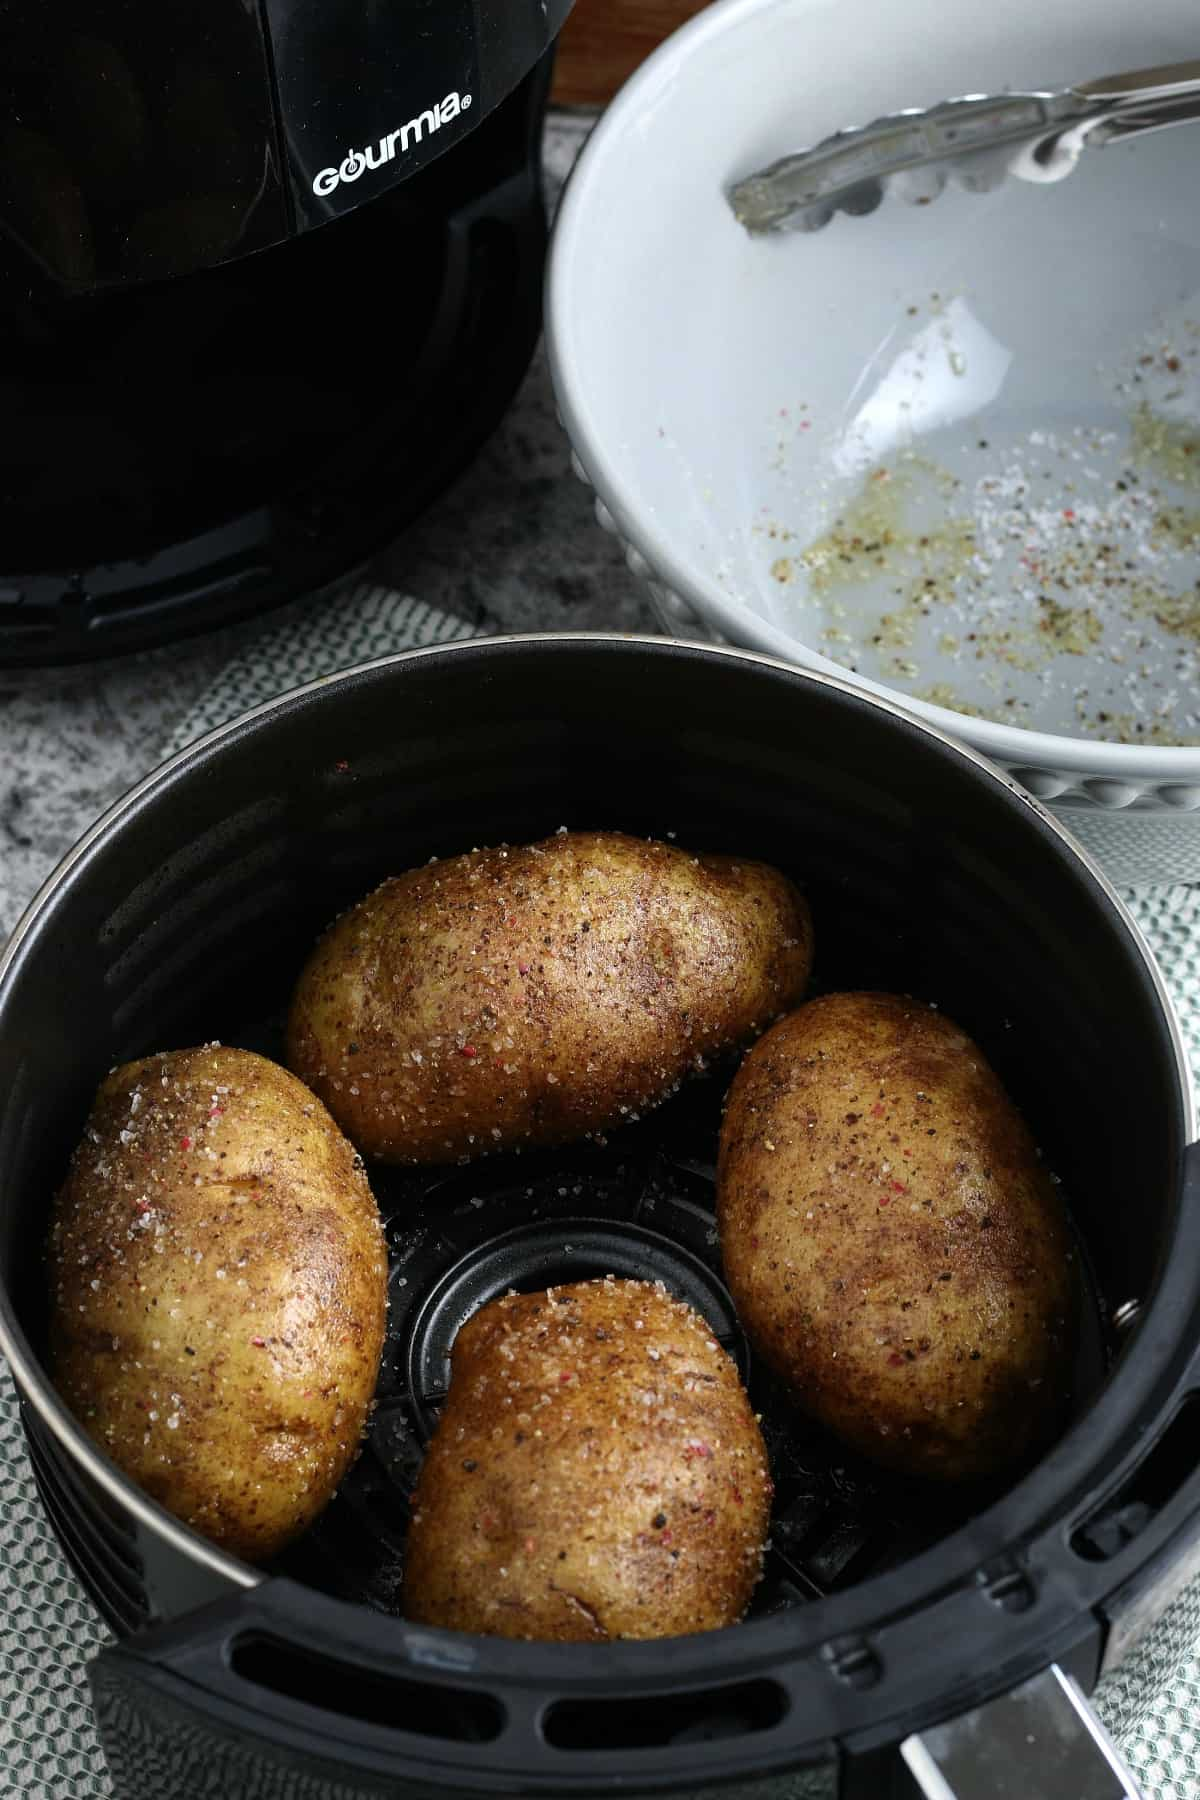 Looking down at four prepared baked potatoes in an air fryer basket with an empty bowl of oiled seasonings on the side.